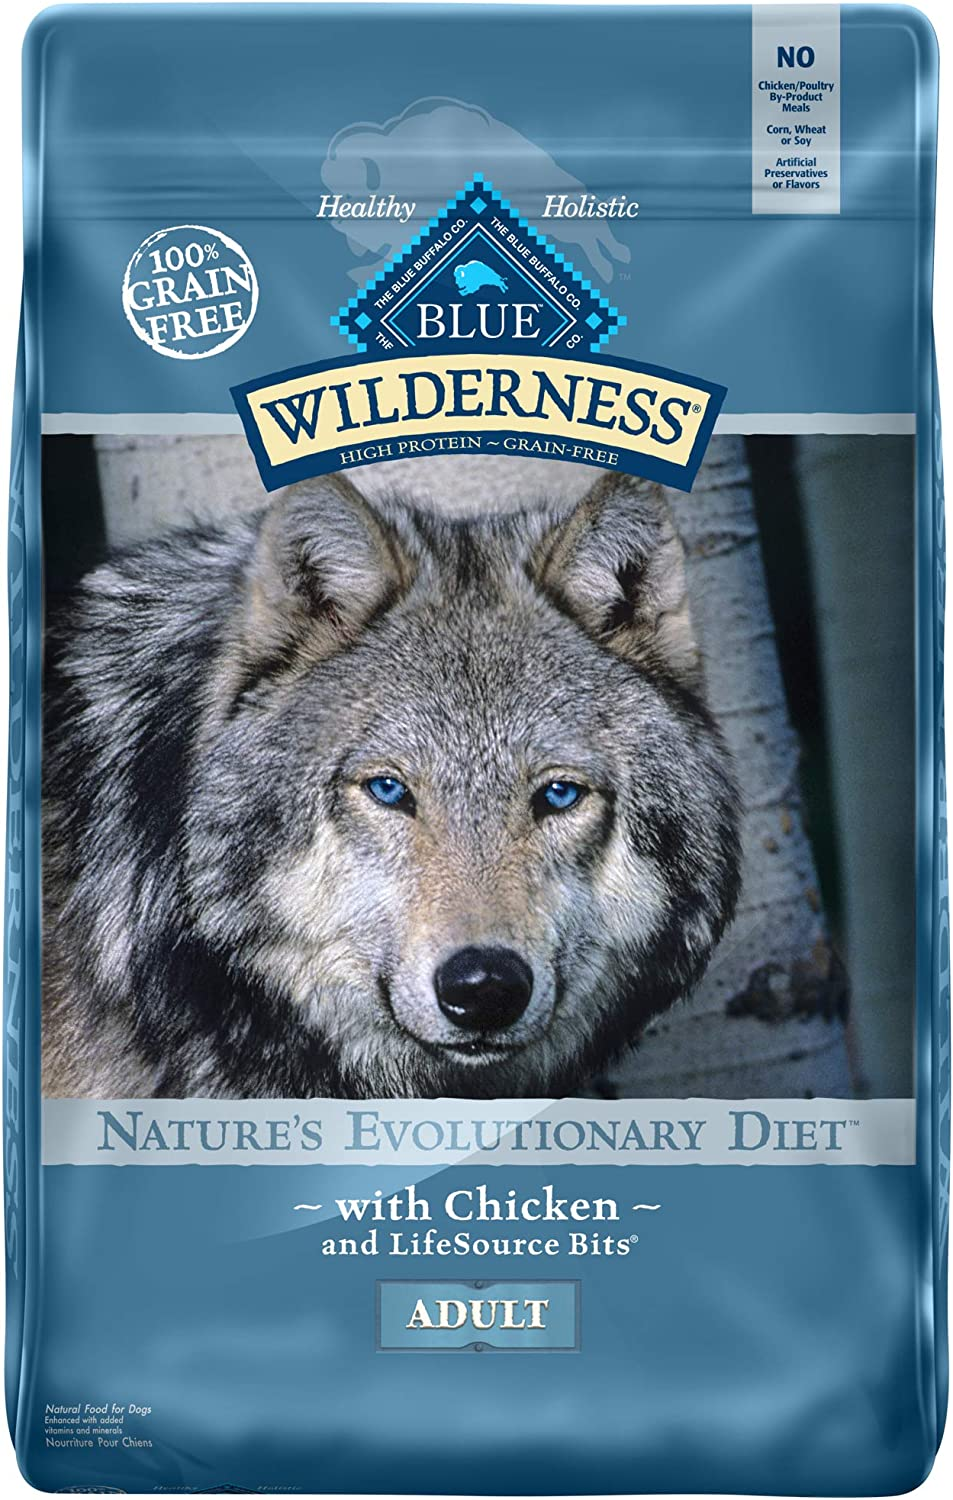 1. Blue Buffalo Wilderness Chicken Recipe Grain-Free Dry Dog Food